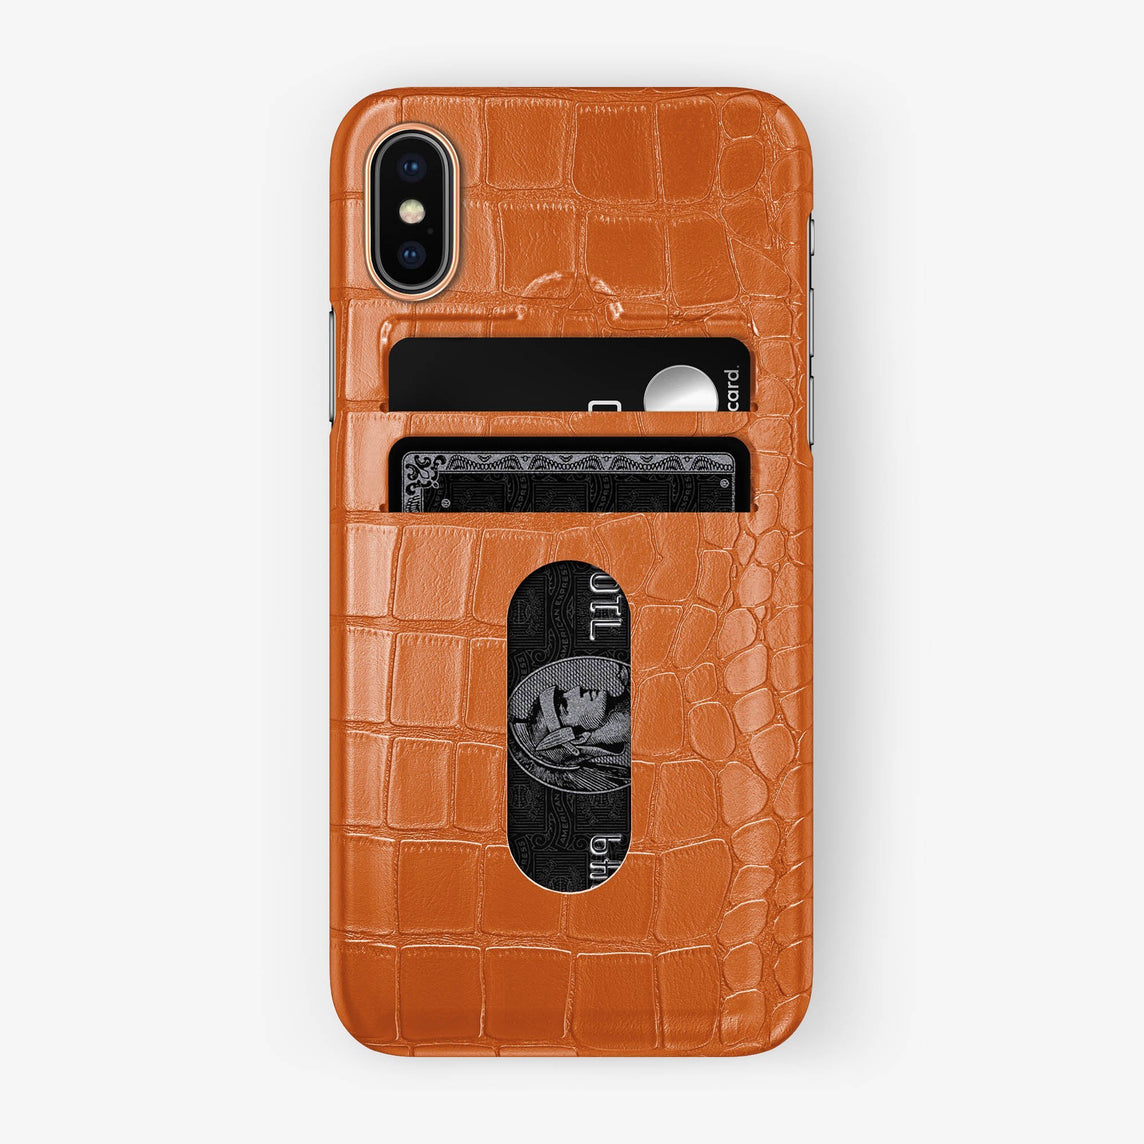 Alligator [iPhone Card Holder Case] [model:iphone-x-case] [colour:orange] [finishing:rose-gold] - Hadoro